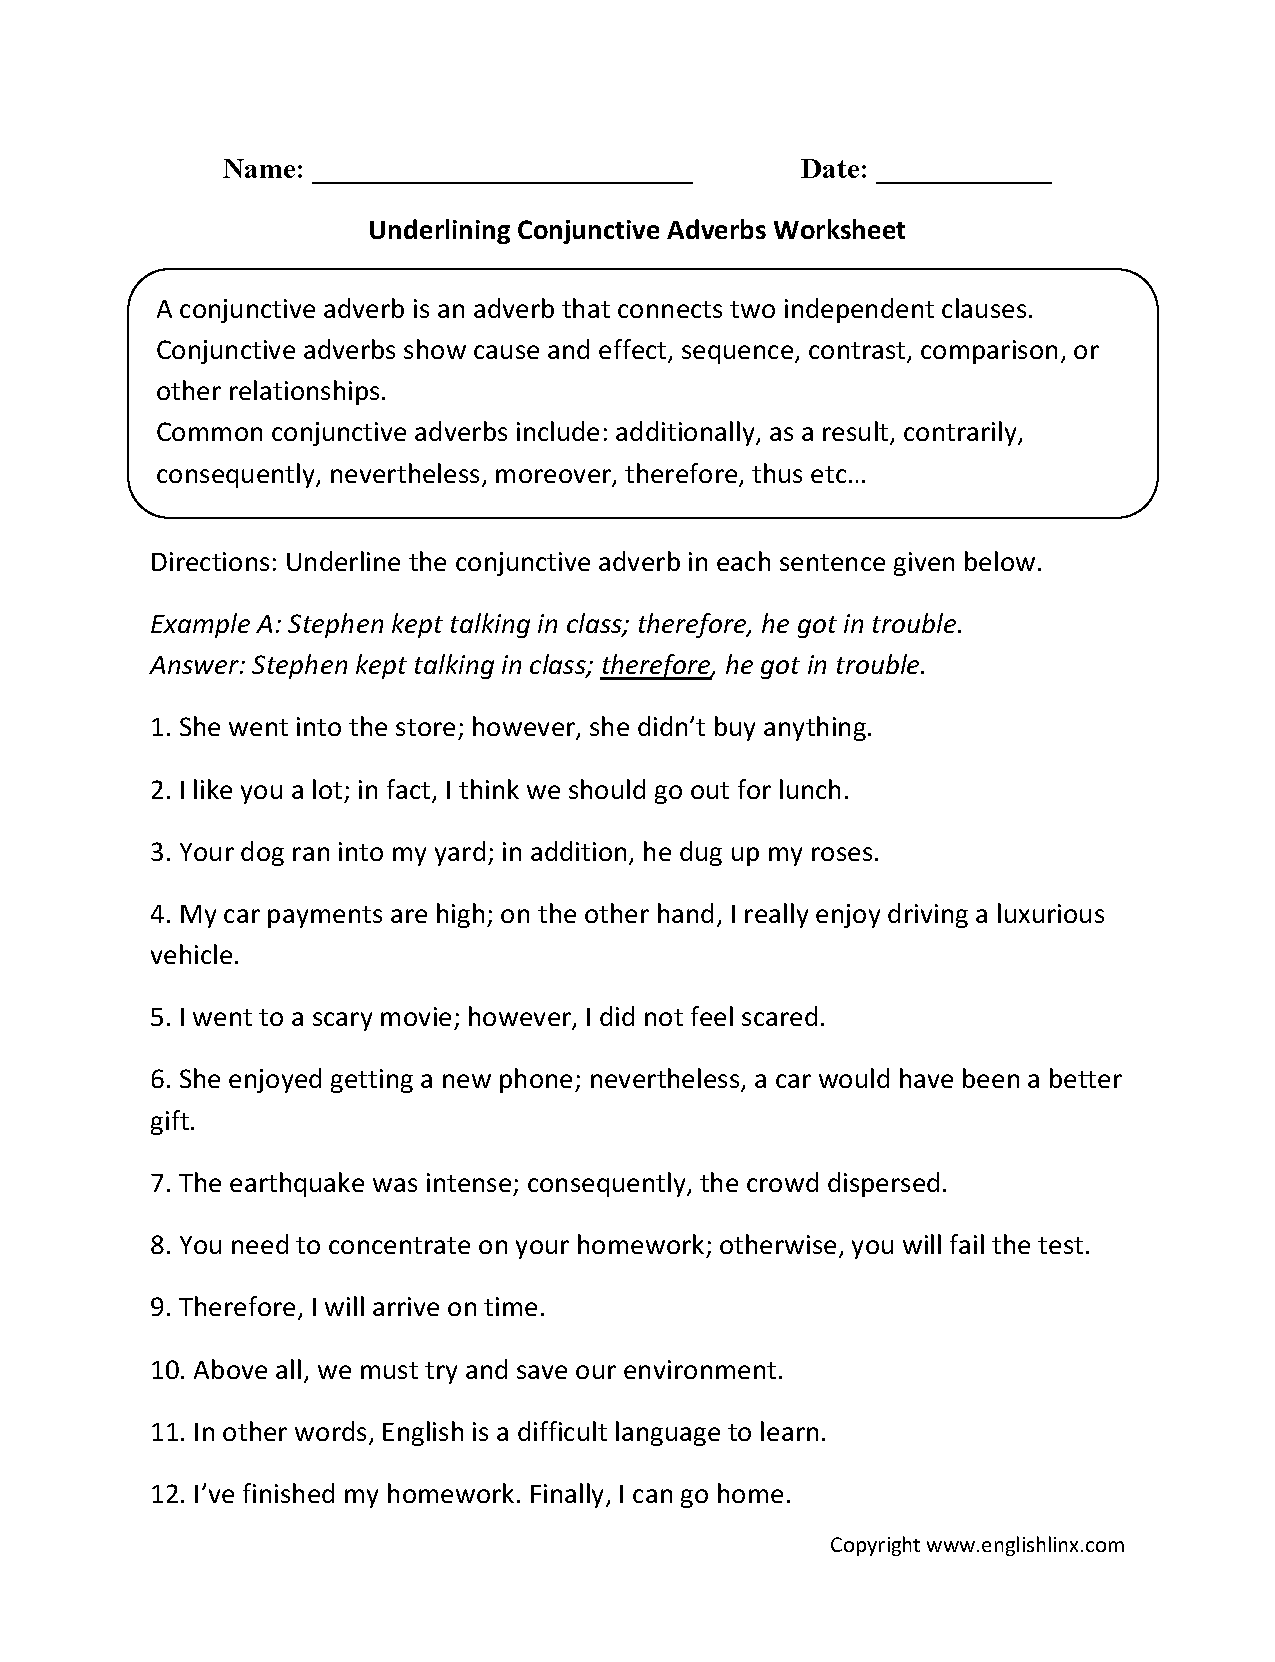 Weirdmailus  Marvellous Englishlinxcom  Conjunctions Worksheets With Exciting Worksheet With Astounding Free Animal Worksheets Also Right Angles Worksheets In Addition Verb Worksheet For Kindergarten And Long Multiplication With Decimals Worksheets As Well As Double Bar Graph Worksheets Th Grade Additionally Vowel Blend Worksheets From Englishlinxcom With Weirdmailus  Exciting Englishlinxcom  Conjunctions Worksheets With Astounding Worksheet And Marvellous Free Animal Worksheets Also Right Angles Worksheets In Addition Verb Worksheet For Kindergarten From Englishlinxcom